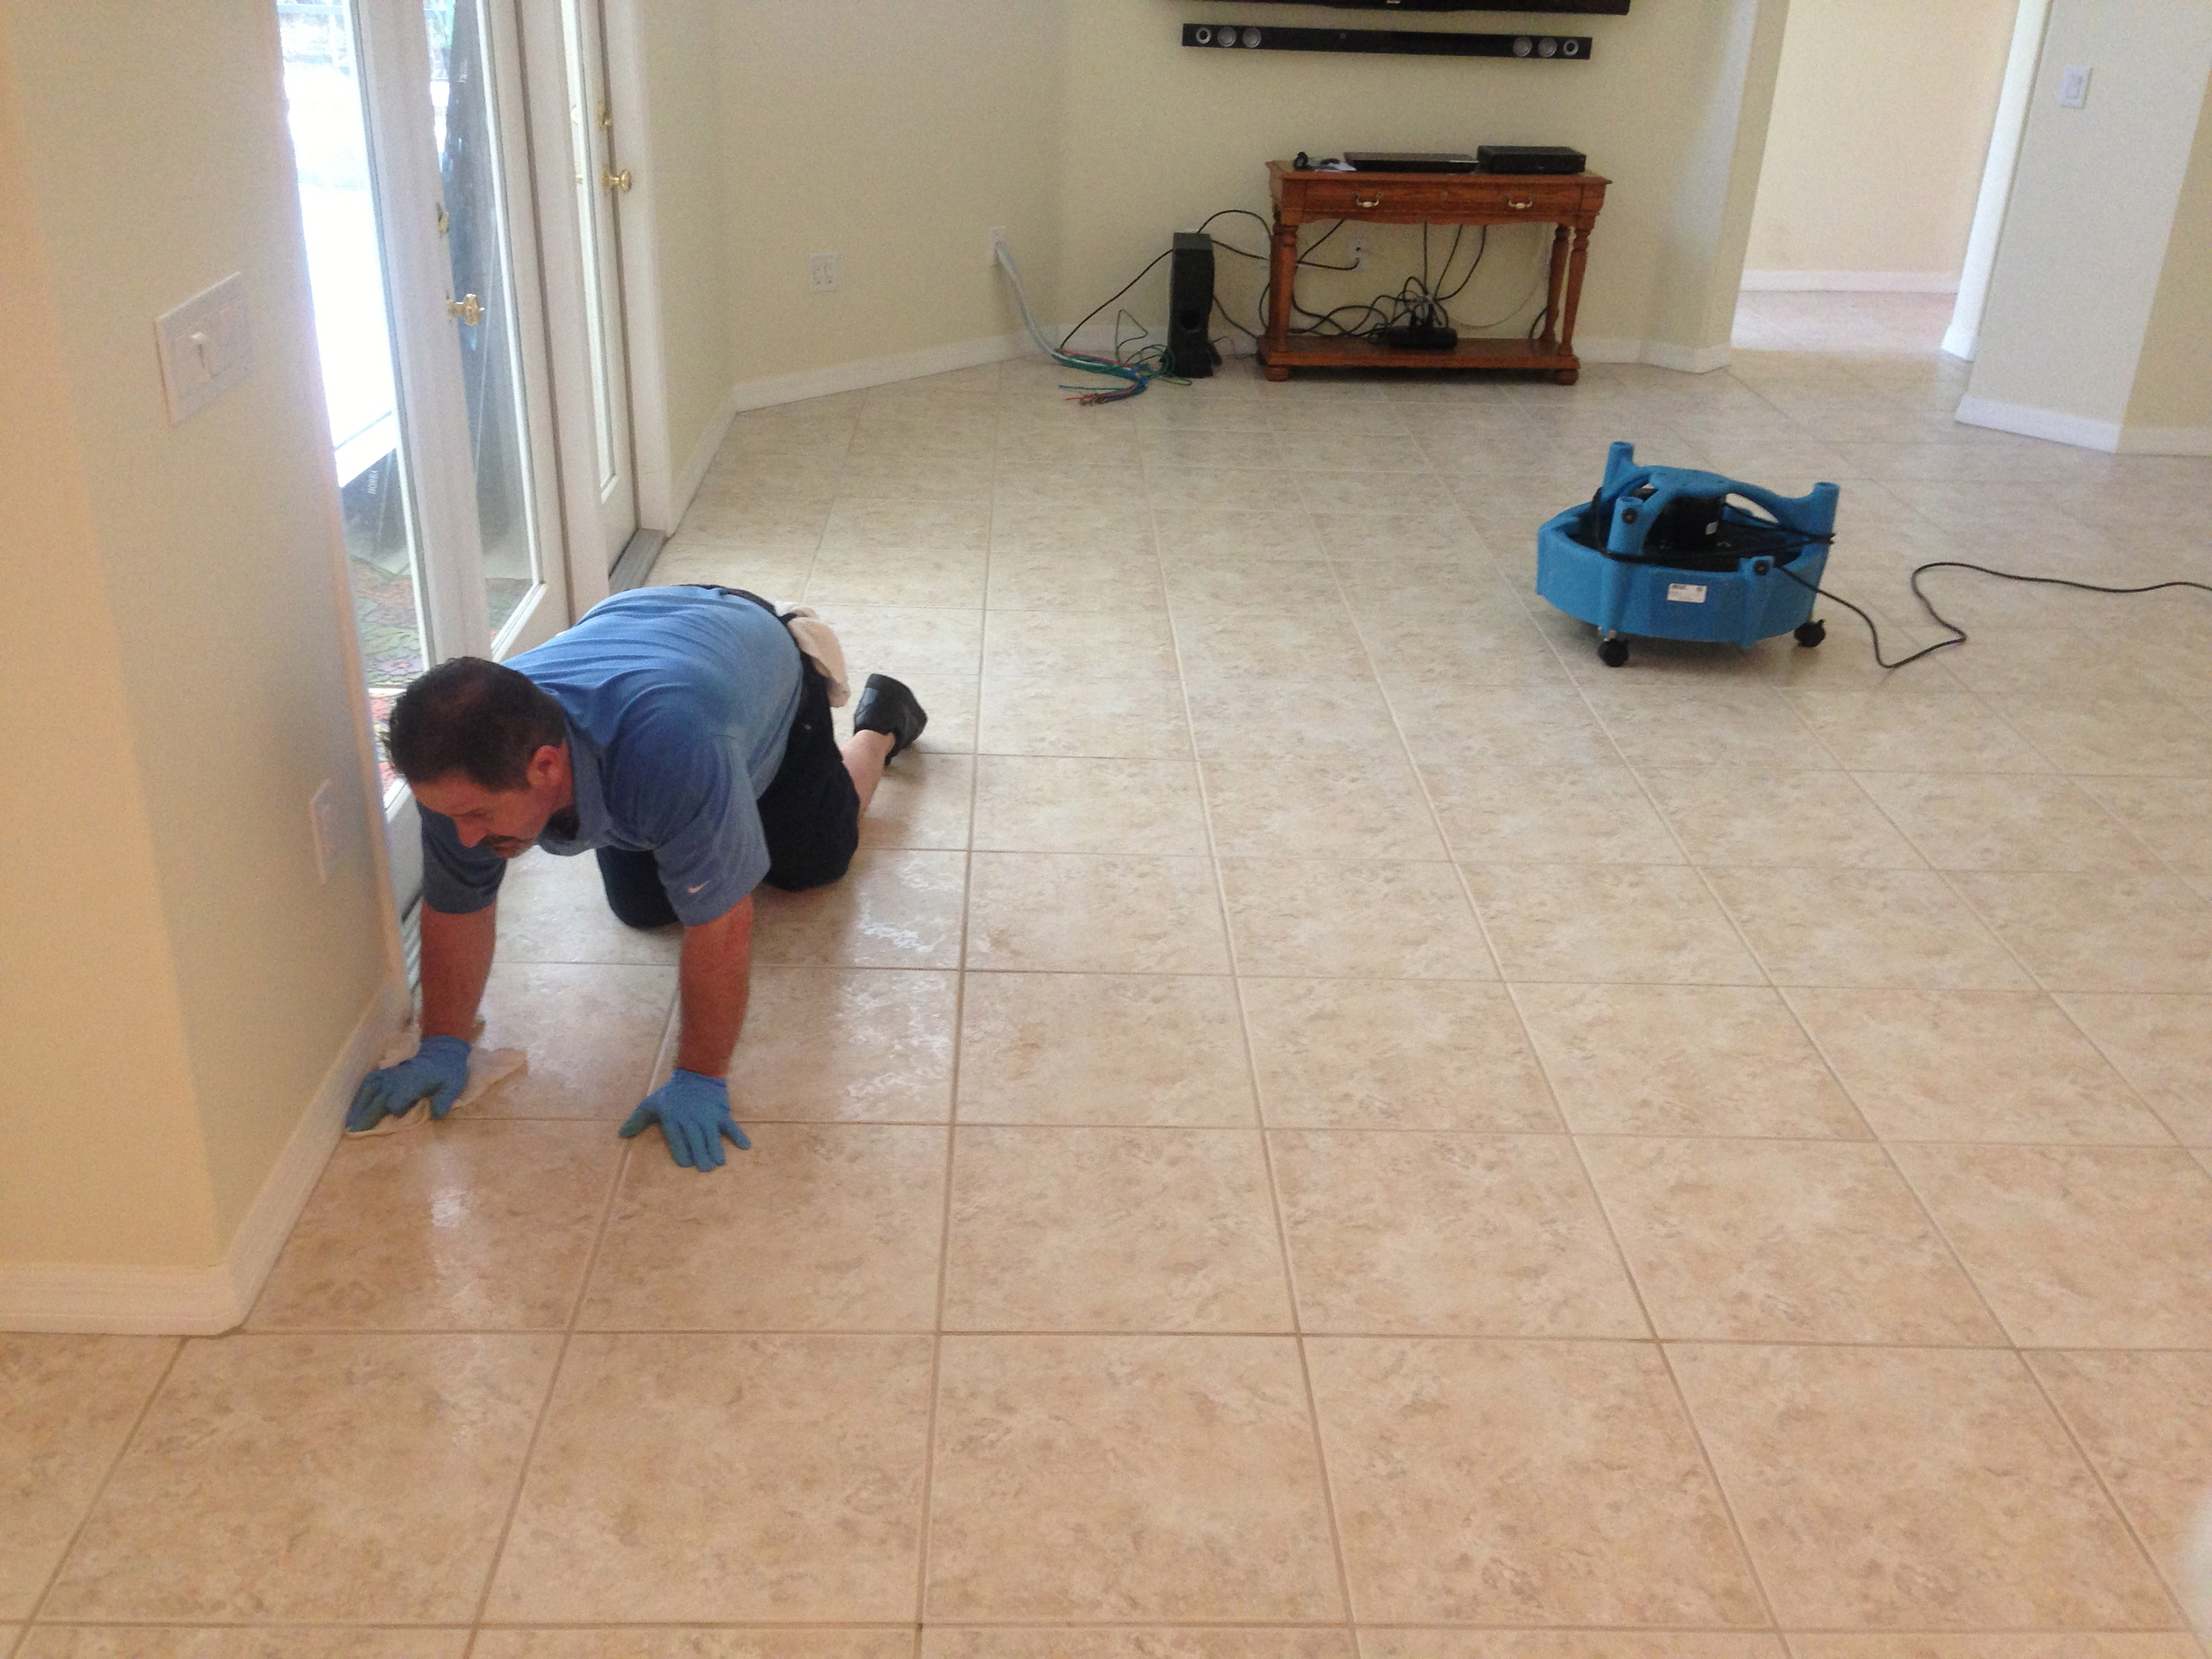 Cleaning dirty grout lines